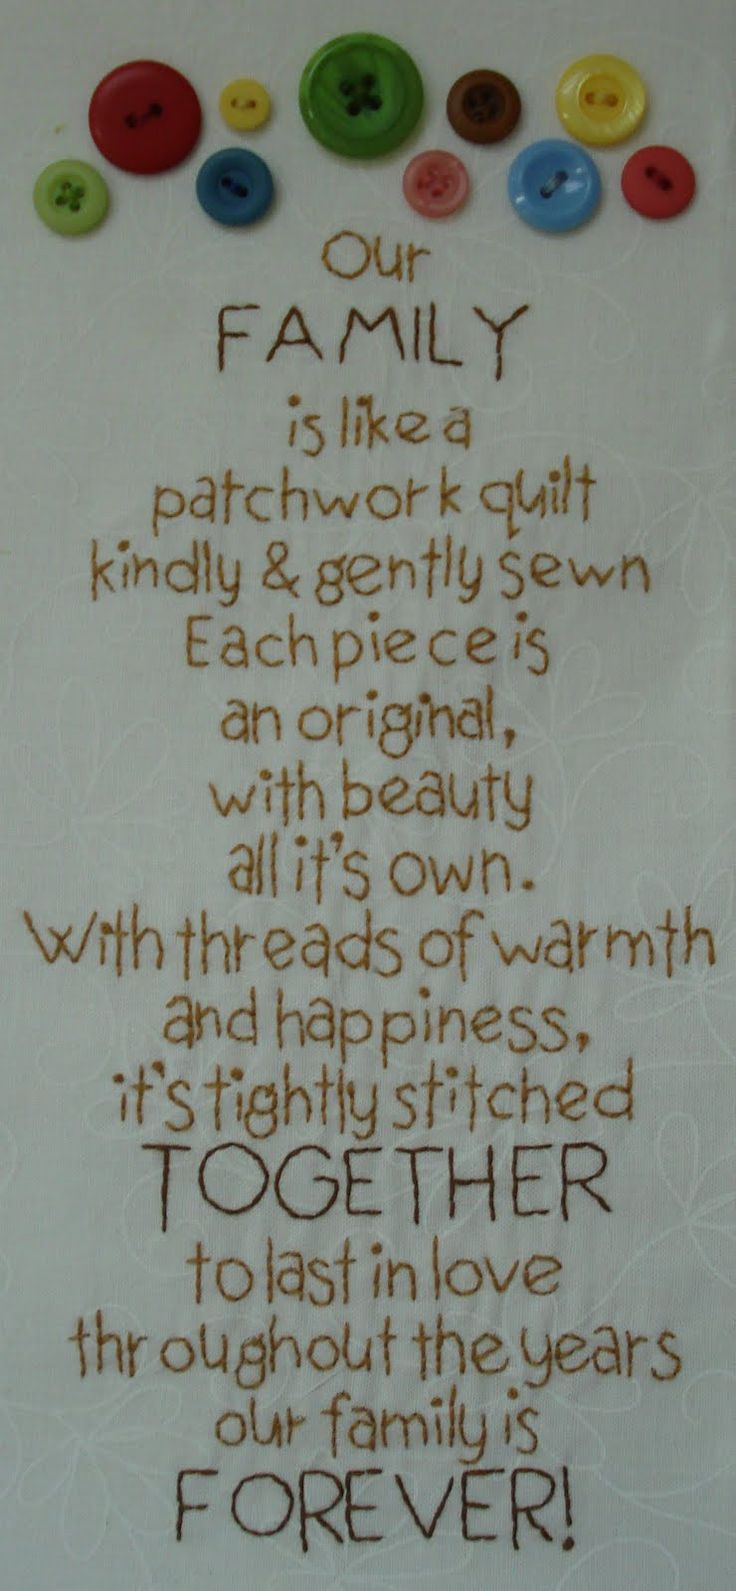 Our Family is like a patchwork quilt From Lori Holt's